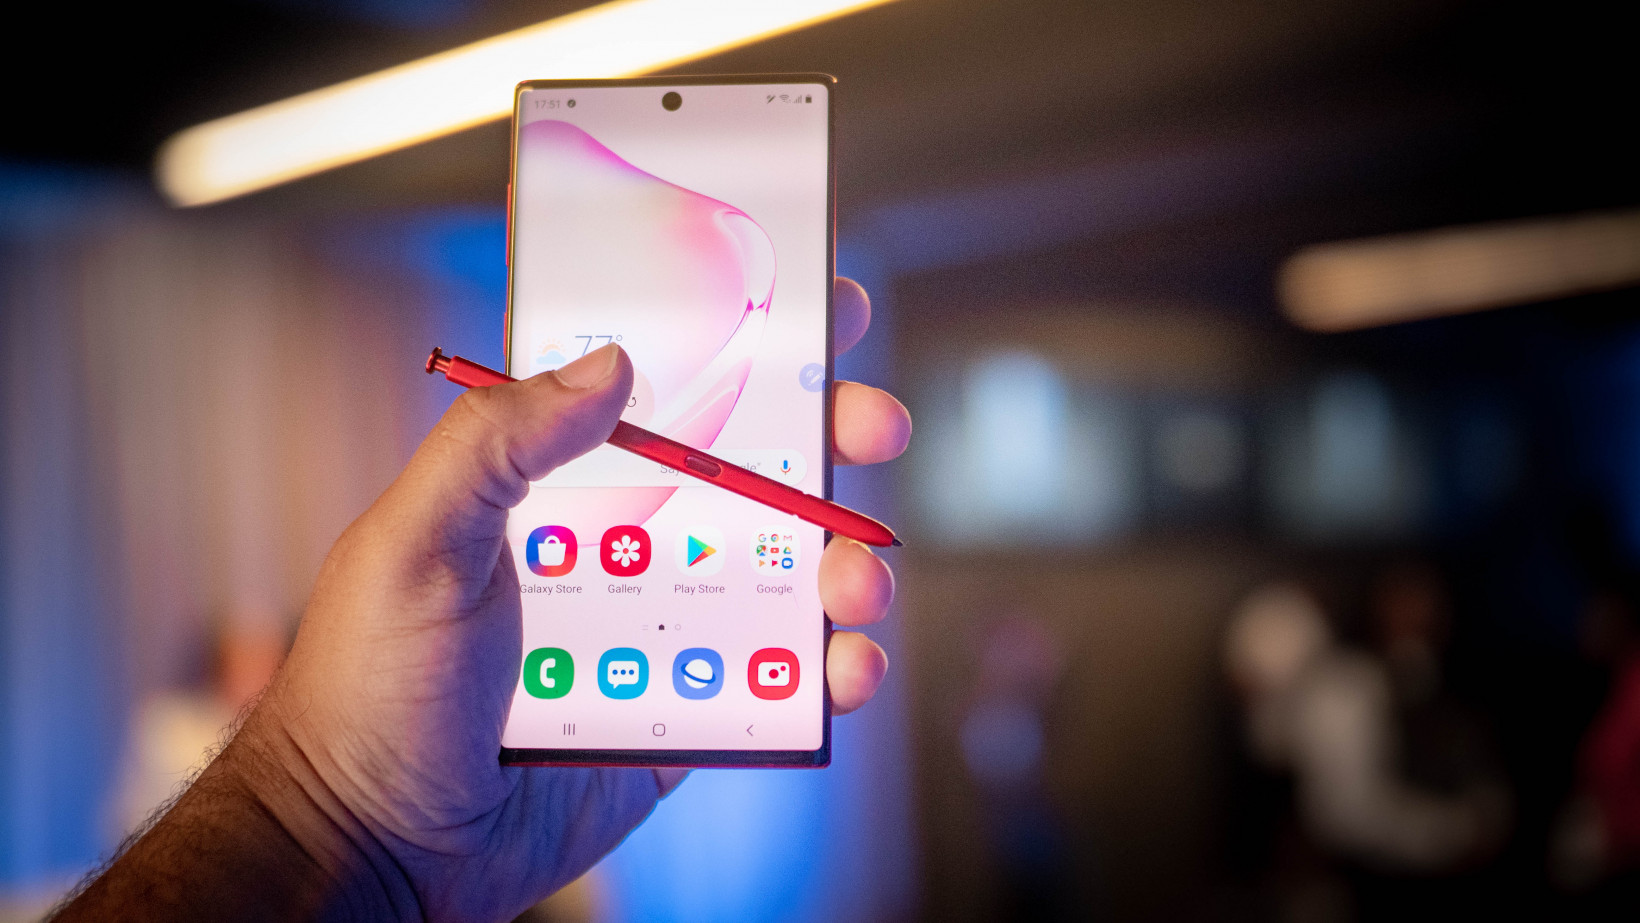 Samsung's Note 10+ has the best camera and display, say DxOMark and DisplayMate